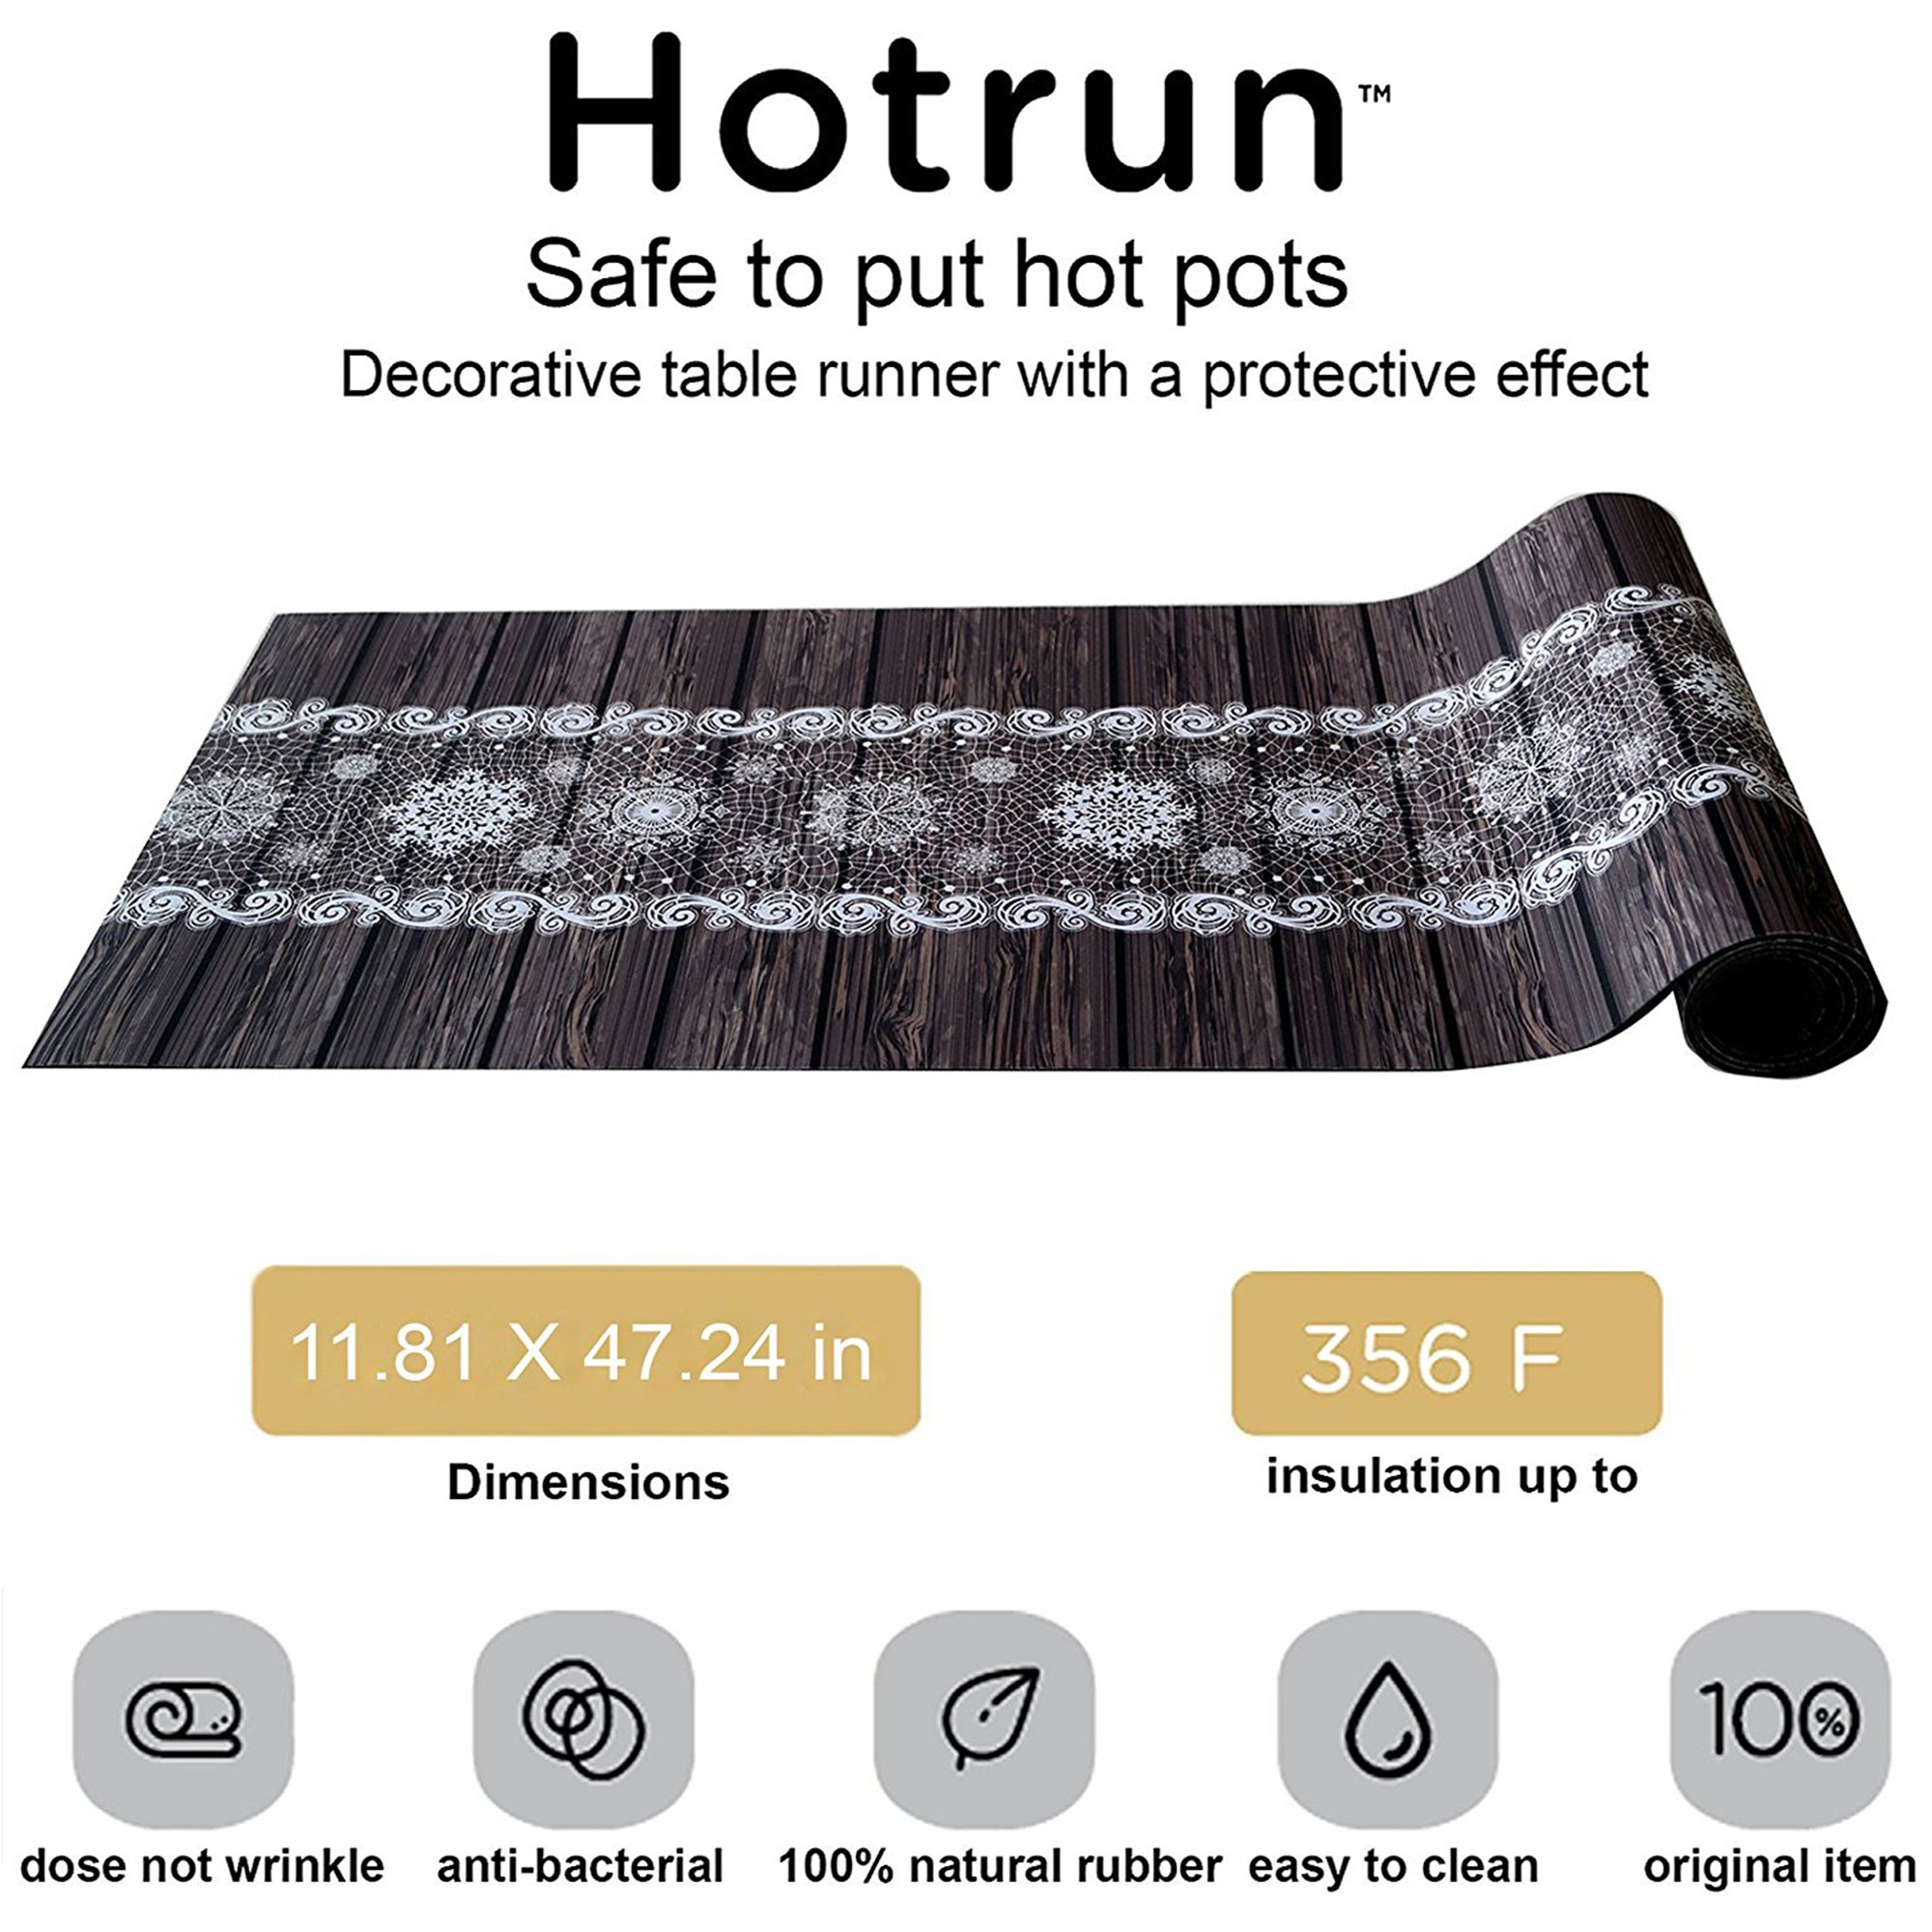 Hotrun Decorative Trivet and Kitchen Table Runners Handles Heat Up to 356F Anti Slip Hand Washable and Convenient for Hot Dishes and Pots (Wood) by Fennoma (Image #3)